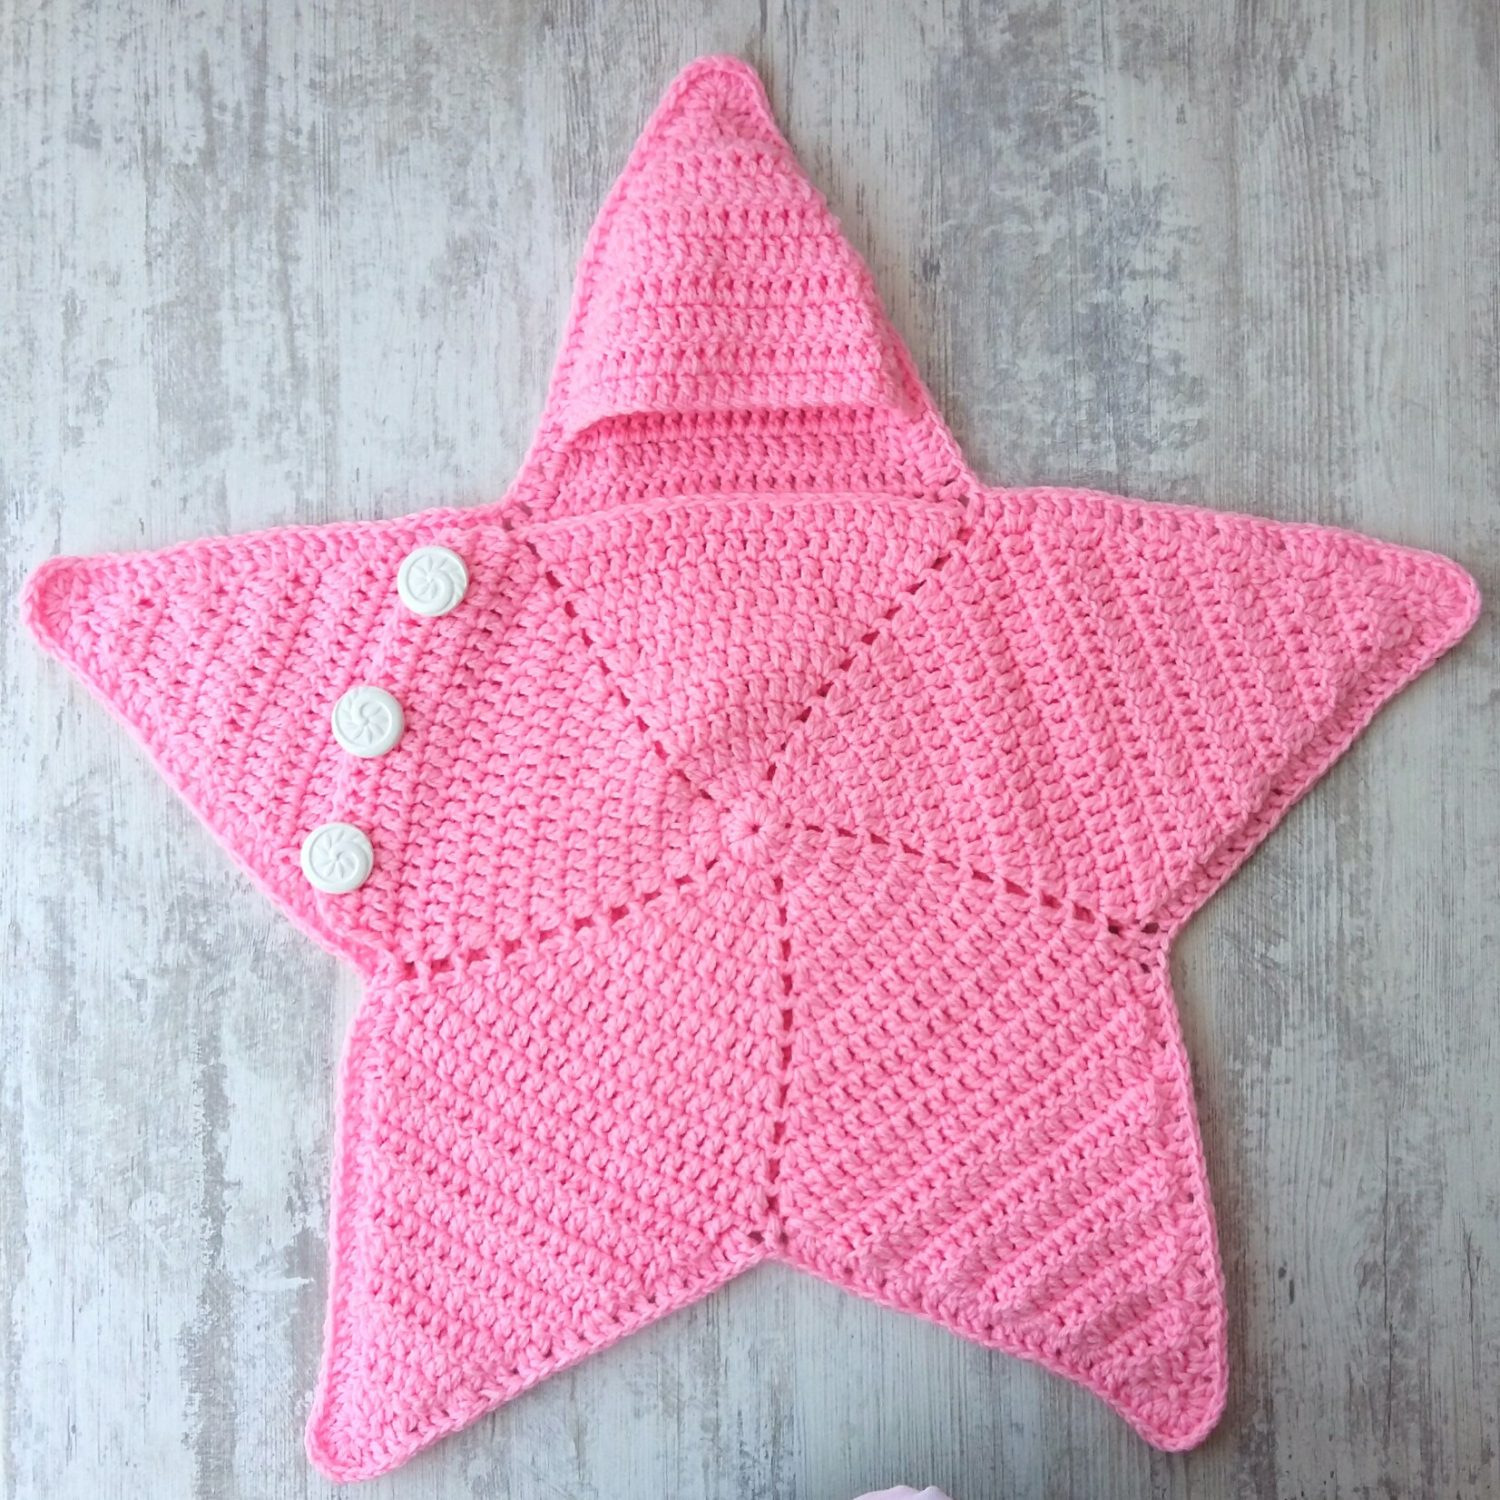 Crochet Baby Star Blanket Wrap Cozy Free Pattern My Accessory Box